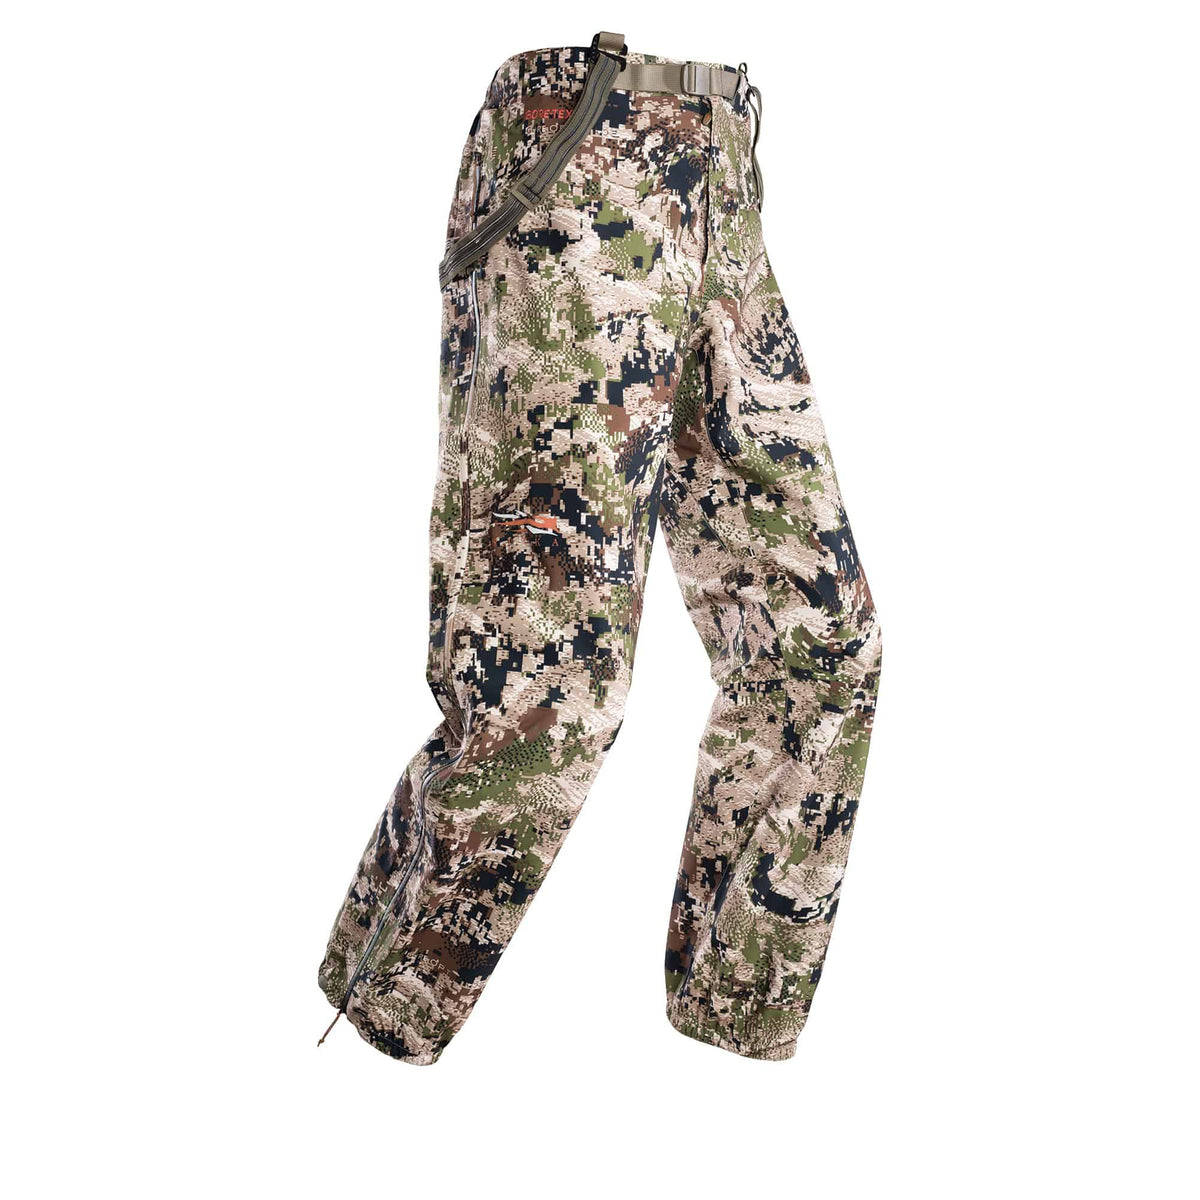 SITKA Gear Cloudburst Rain Pant Optifade Subalpine